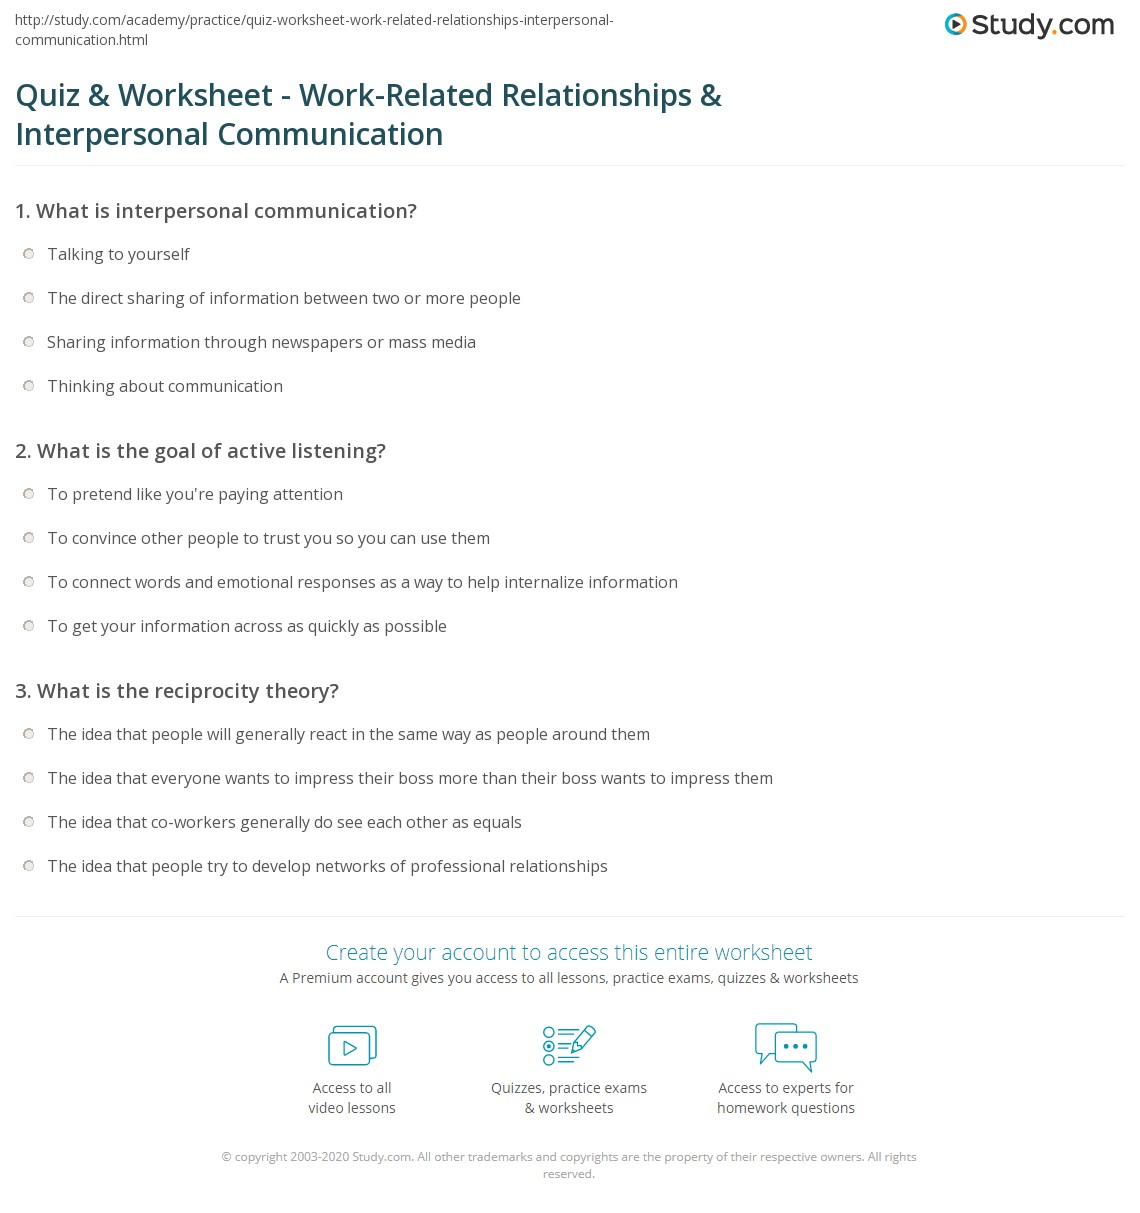 Quiz & Worksheet - Work-Related Relationships & Interpersonal ...